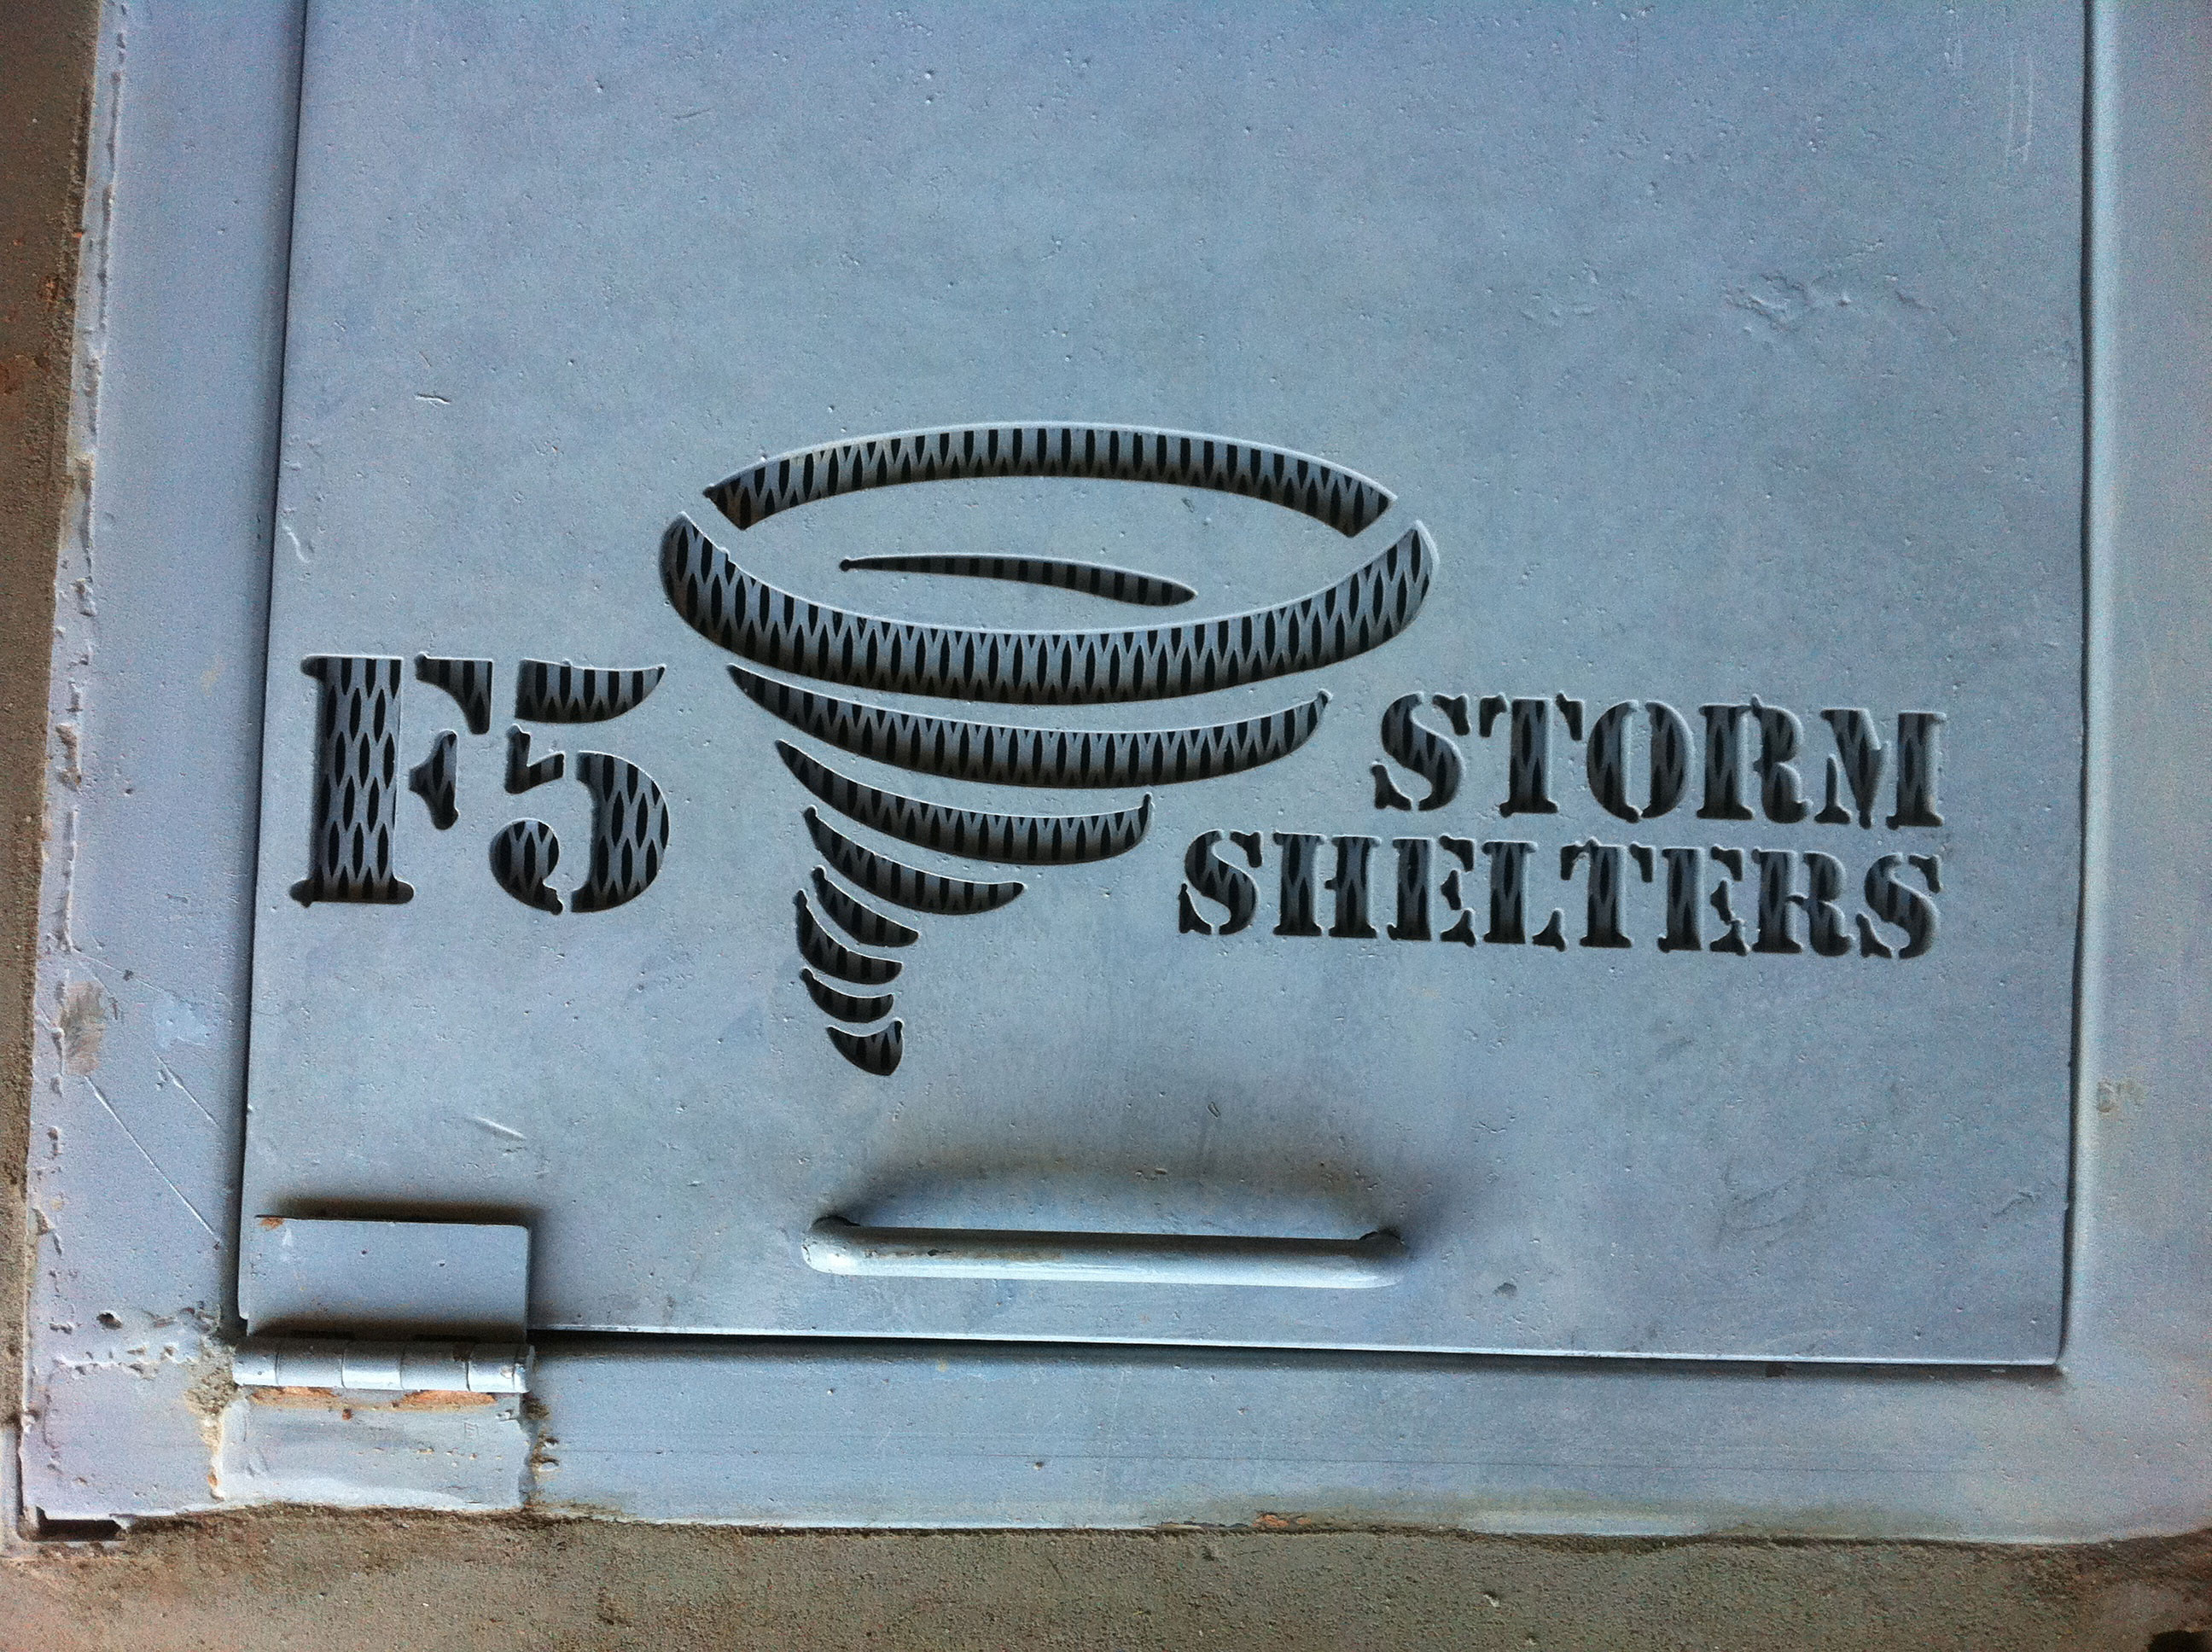 How Do I Finance an F5 Storm Shelter?